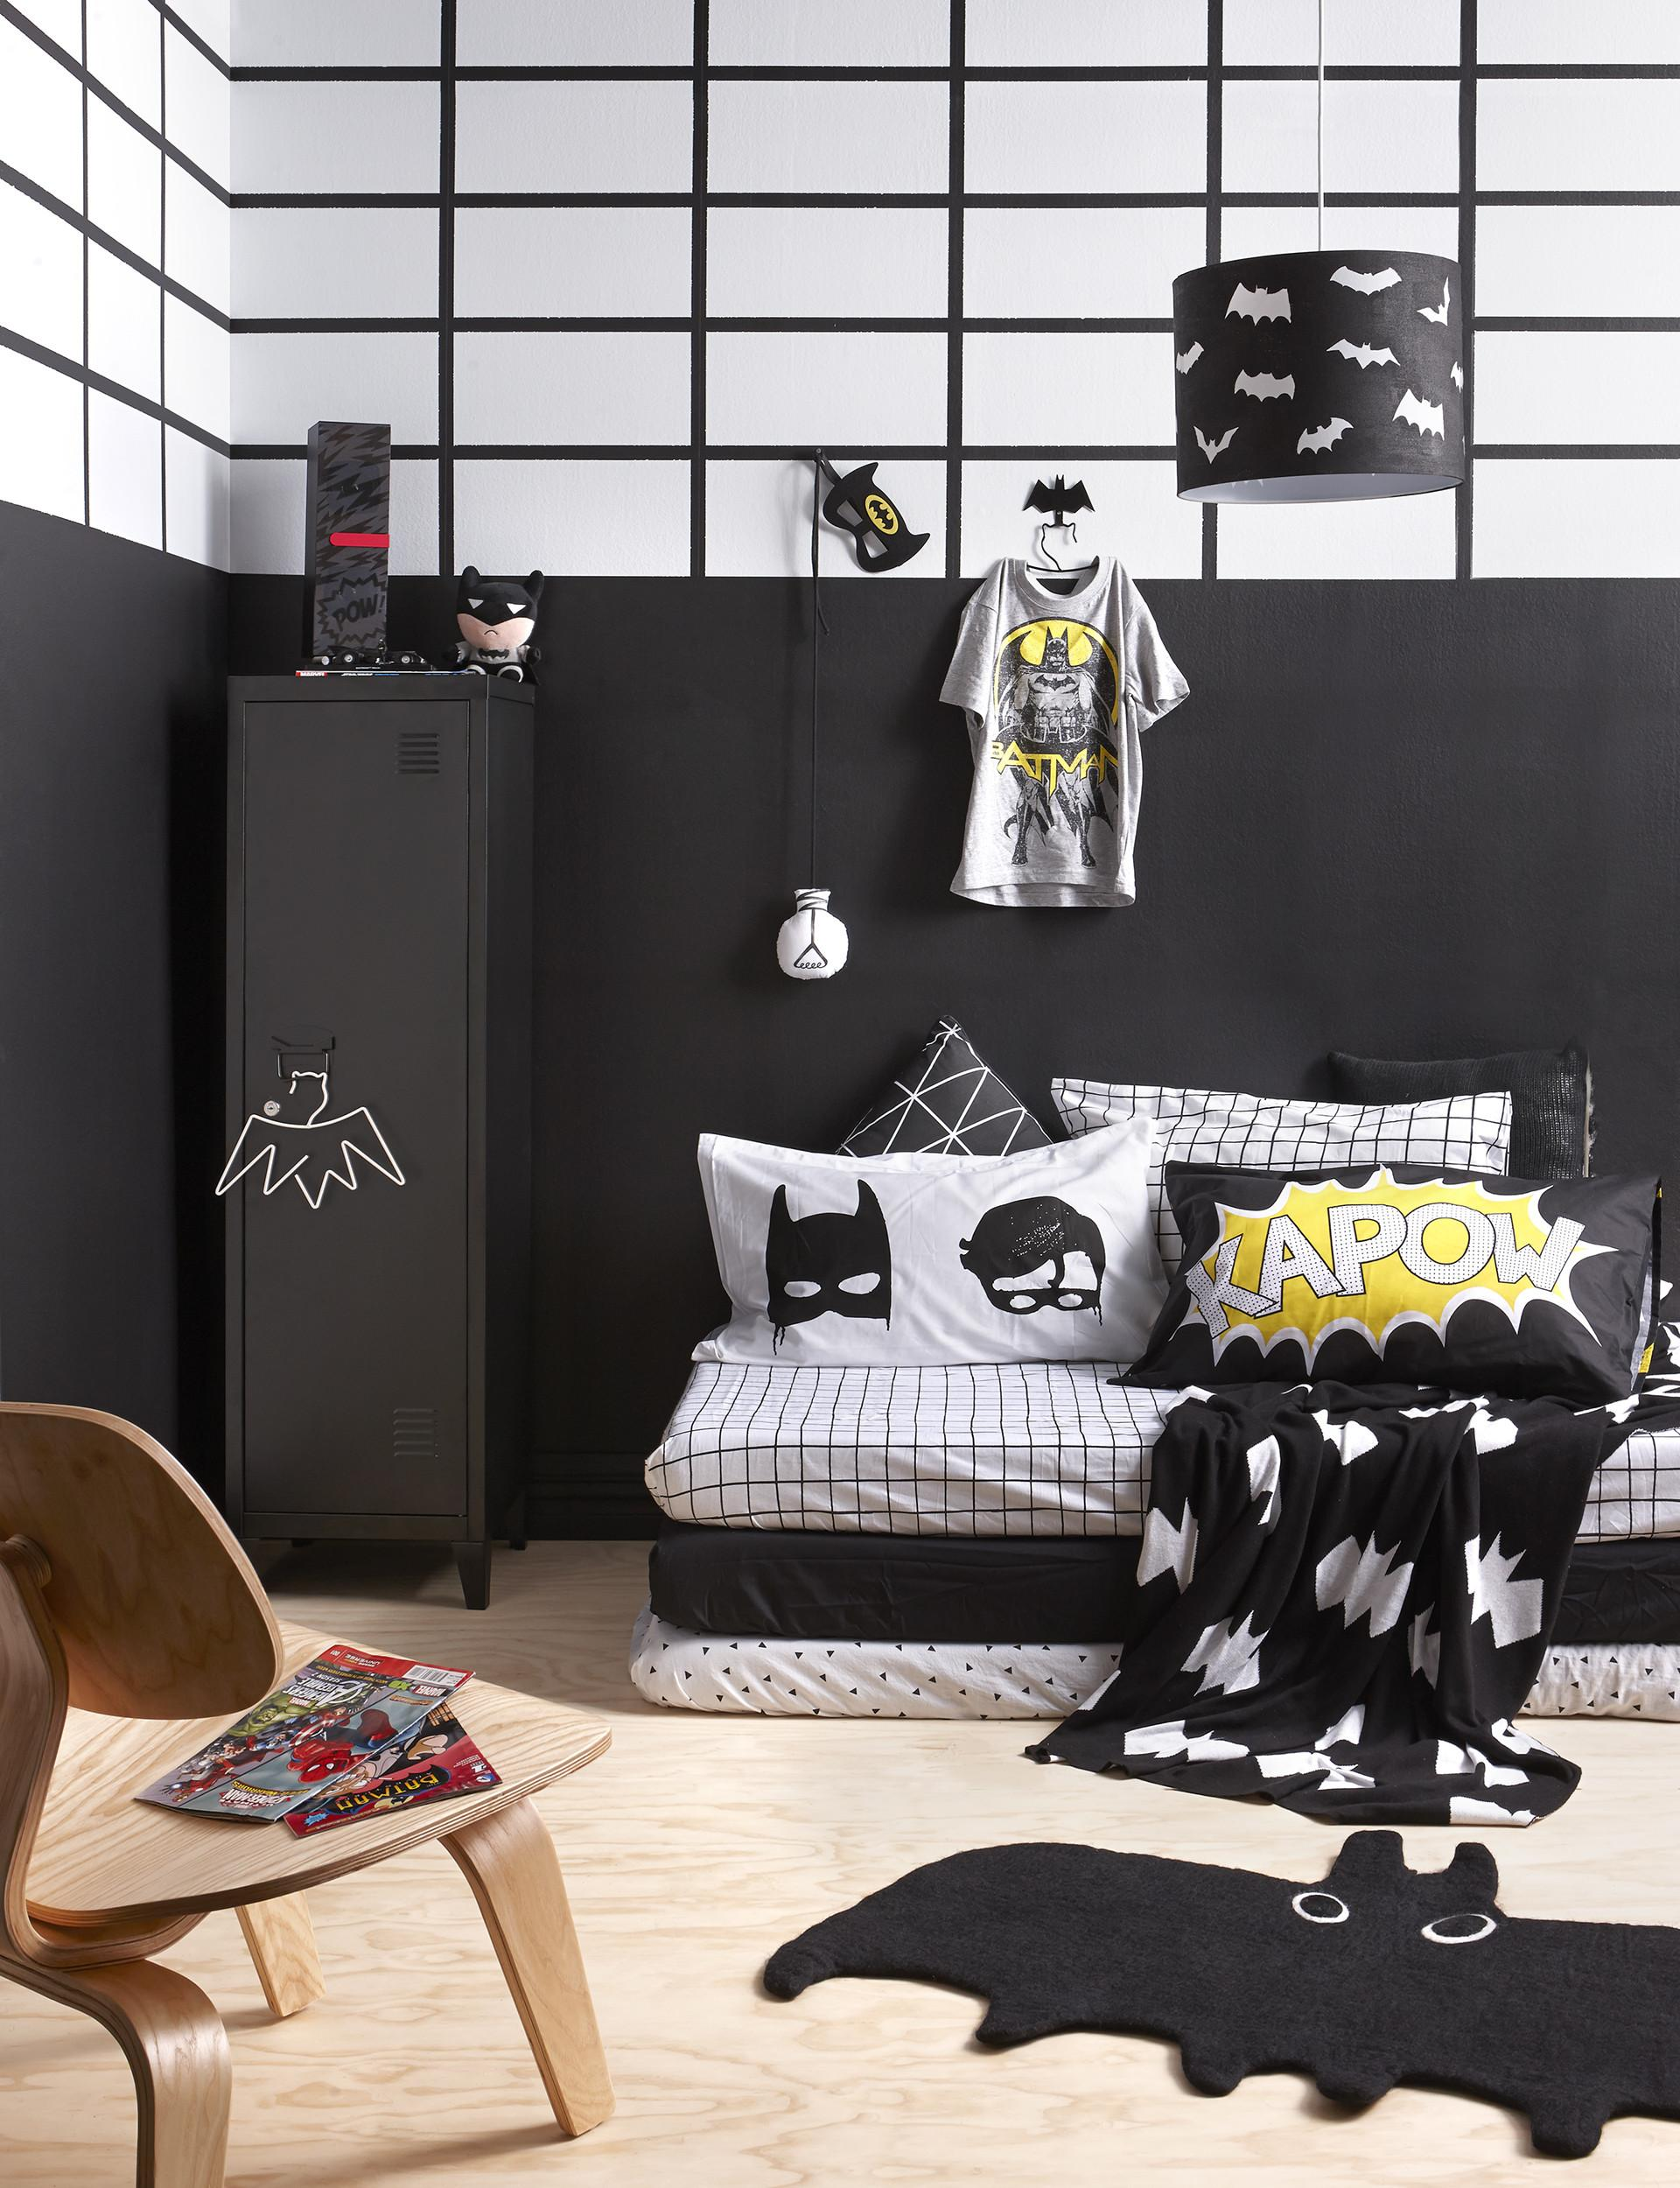 Extraordinary Batman Home Decor Ideas That Will Make You Go Crazy Trends In 2020 With Pictures Decoratorist